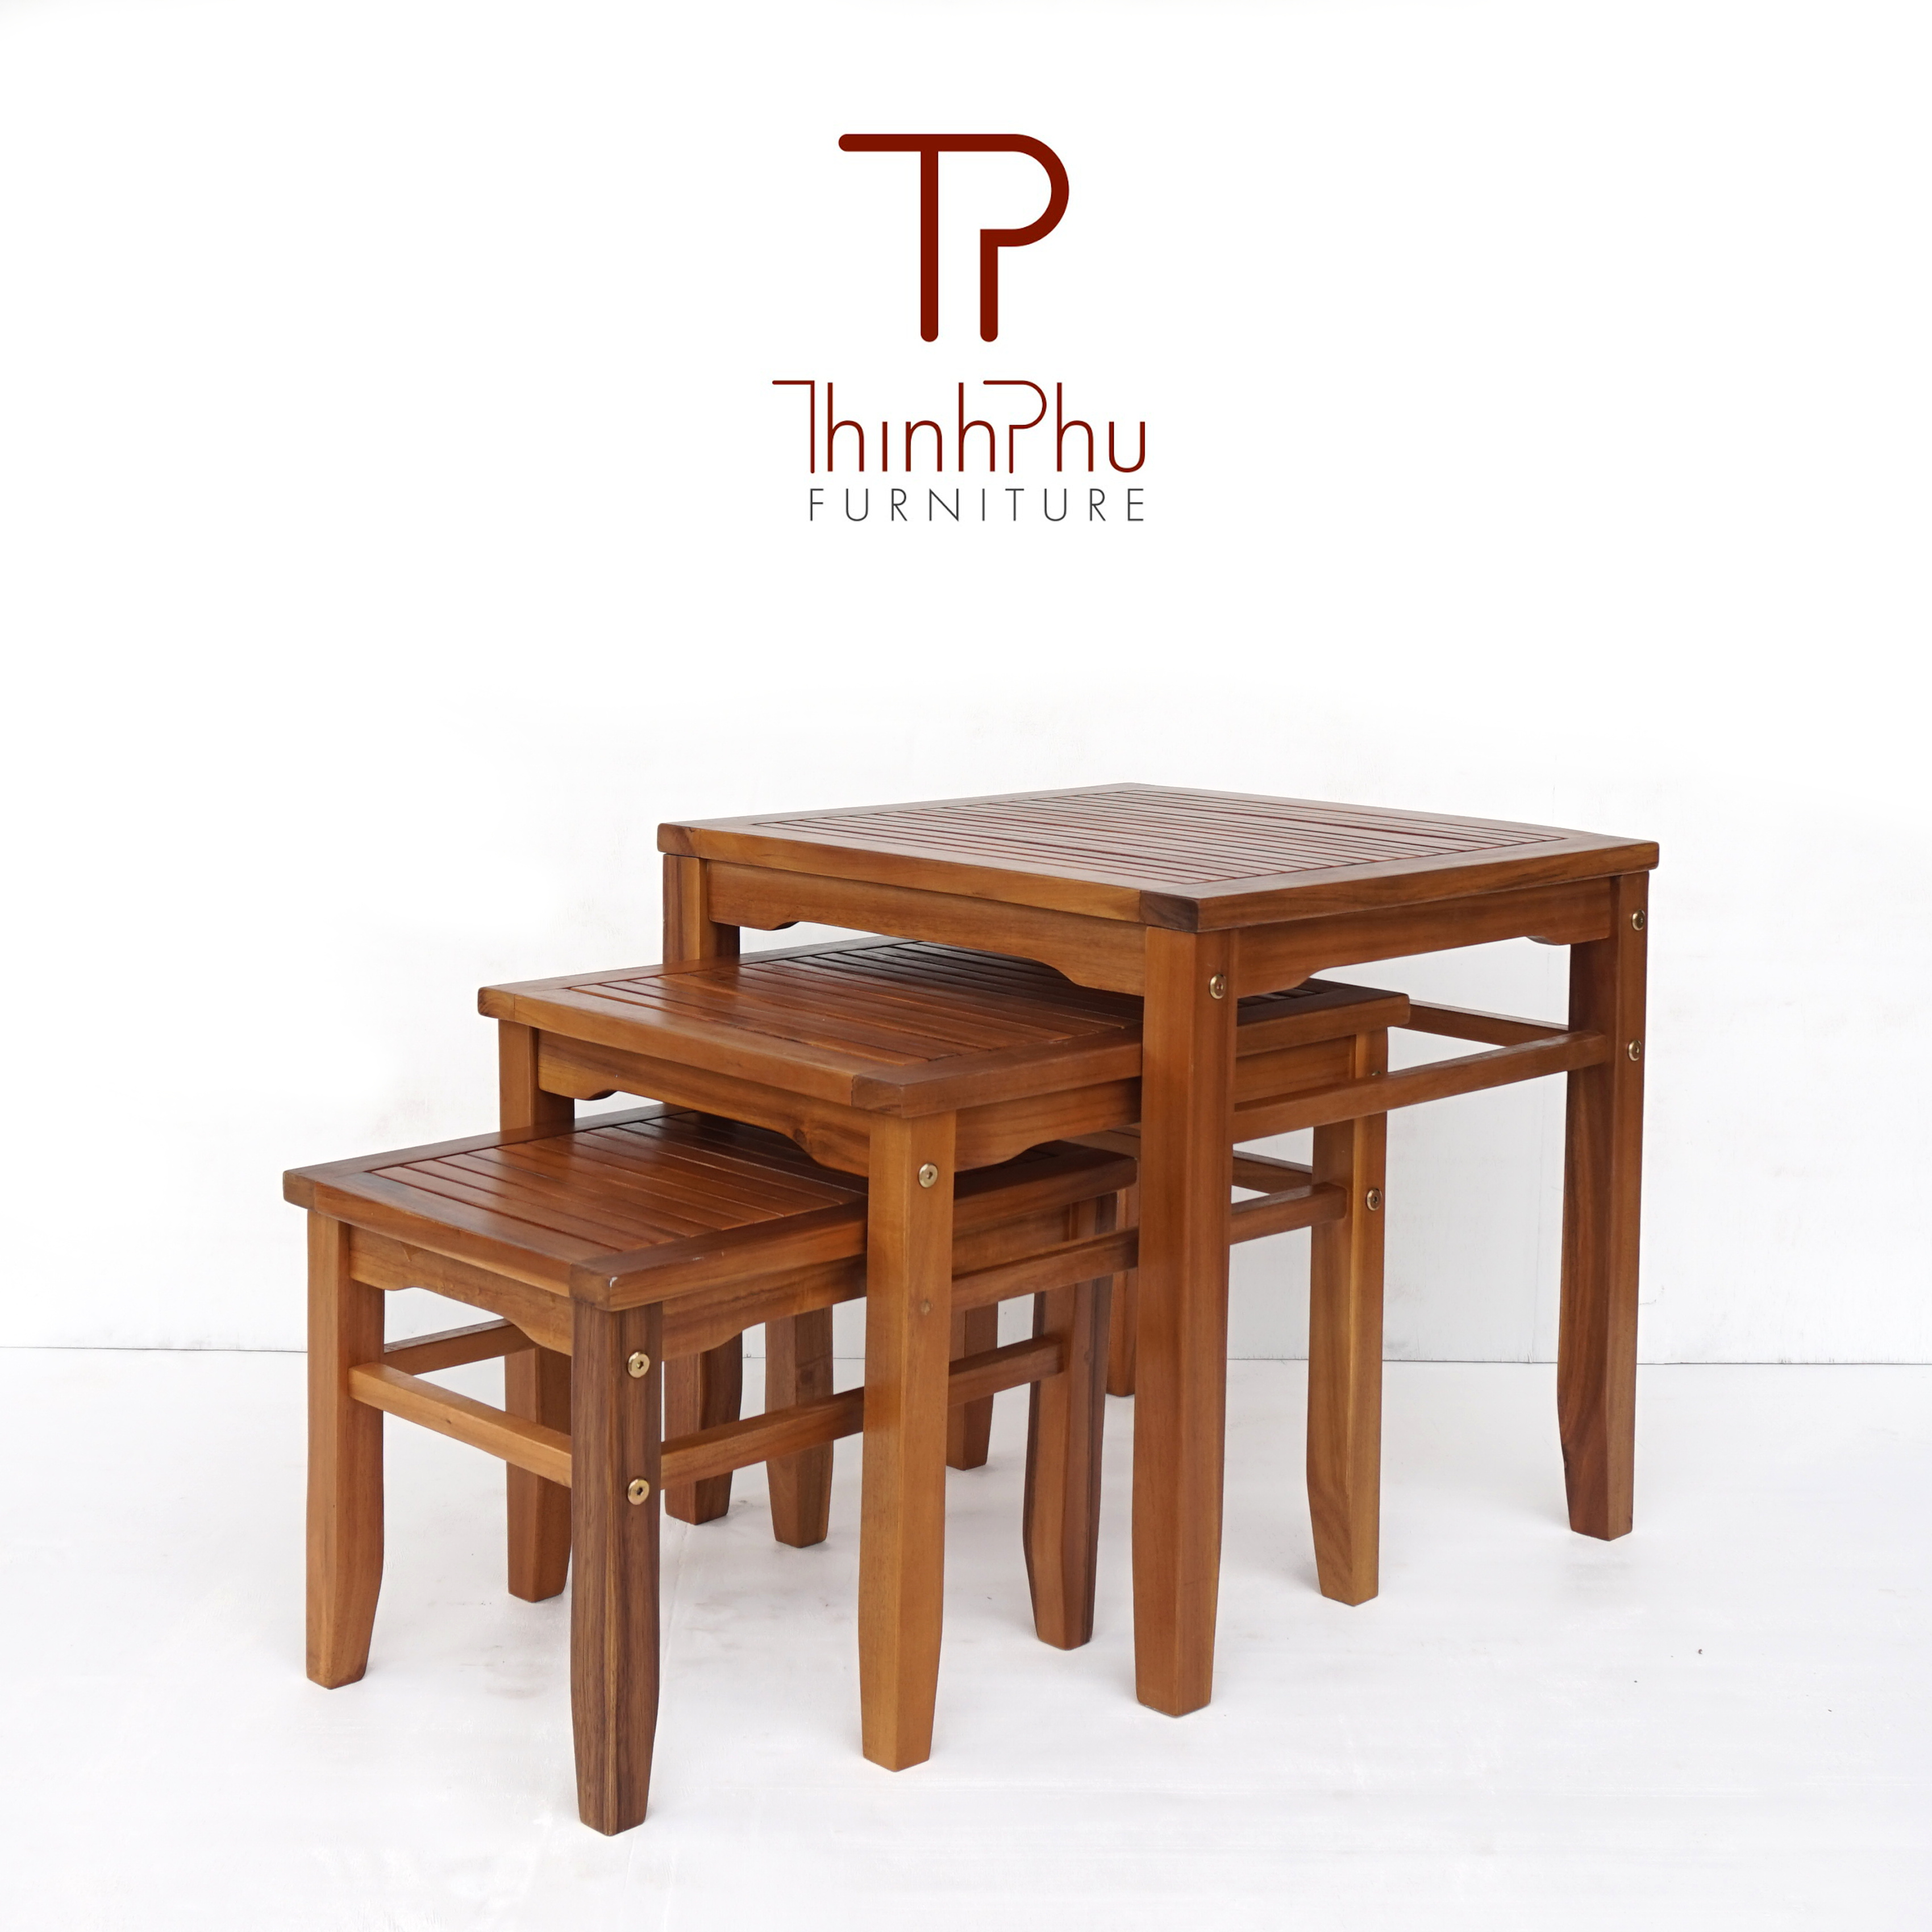 Side table tpsi 05 thinh phu furniture for Vietnam furniture